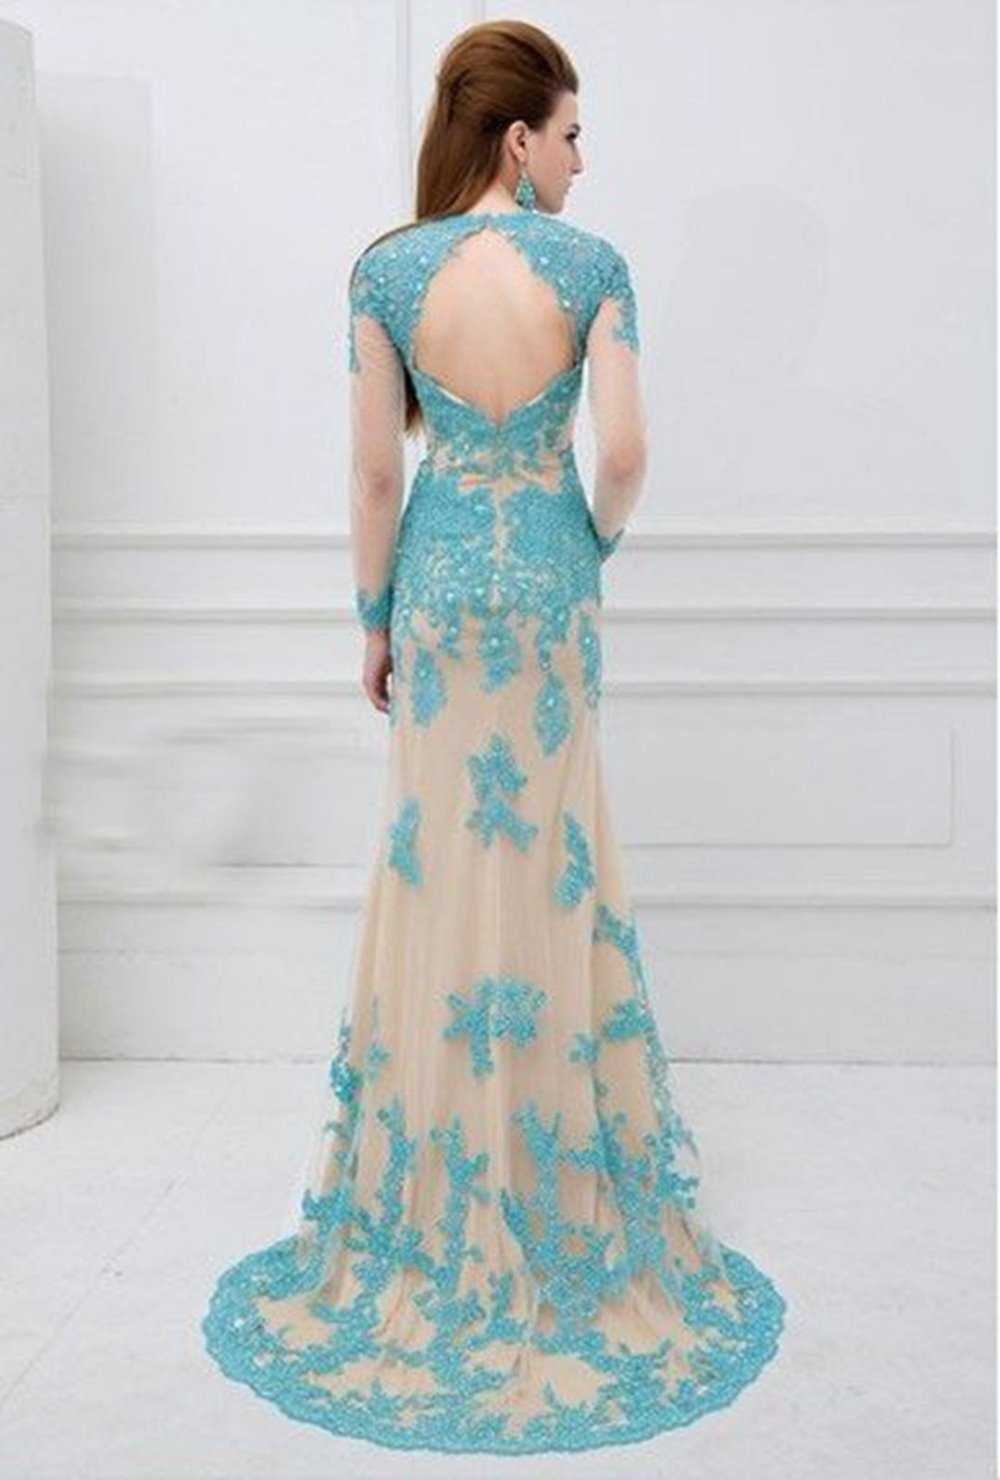 Turquoise Lace Long Sleeves Pageant Prom Bridal Party Gown Wedding Dress In Evening Dresses From Weddings Events On Aliexpress Alibaba Group